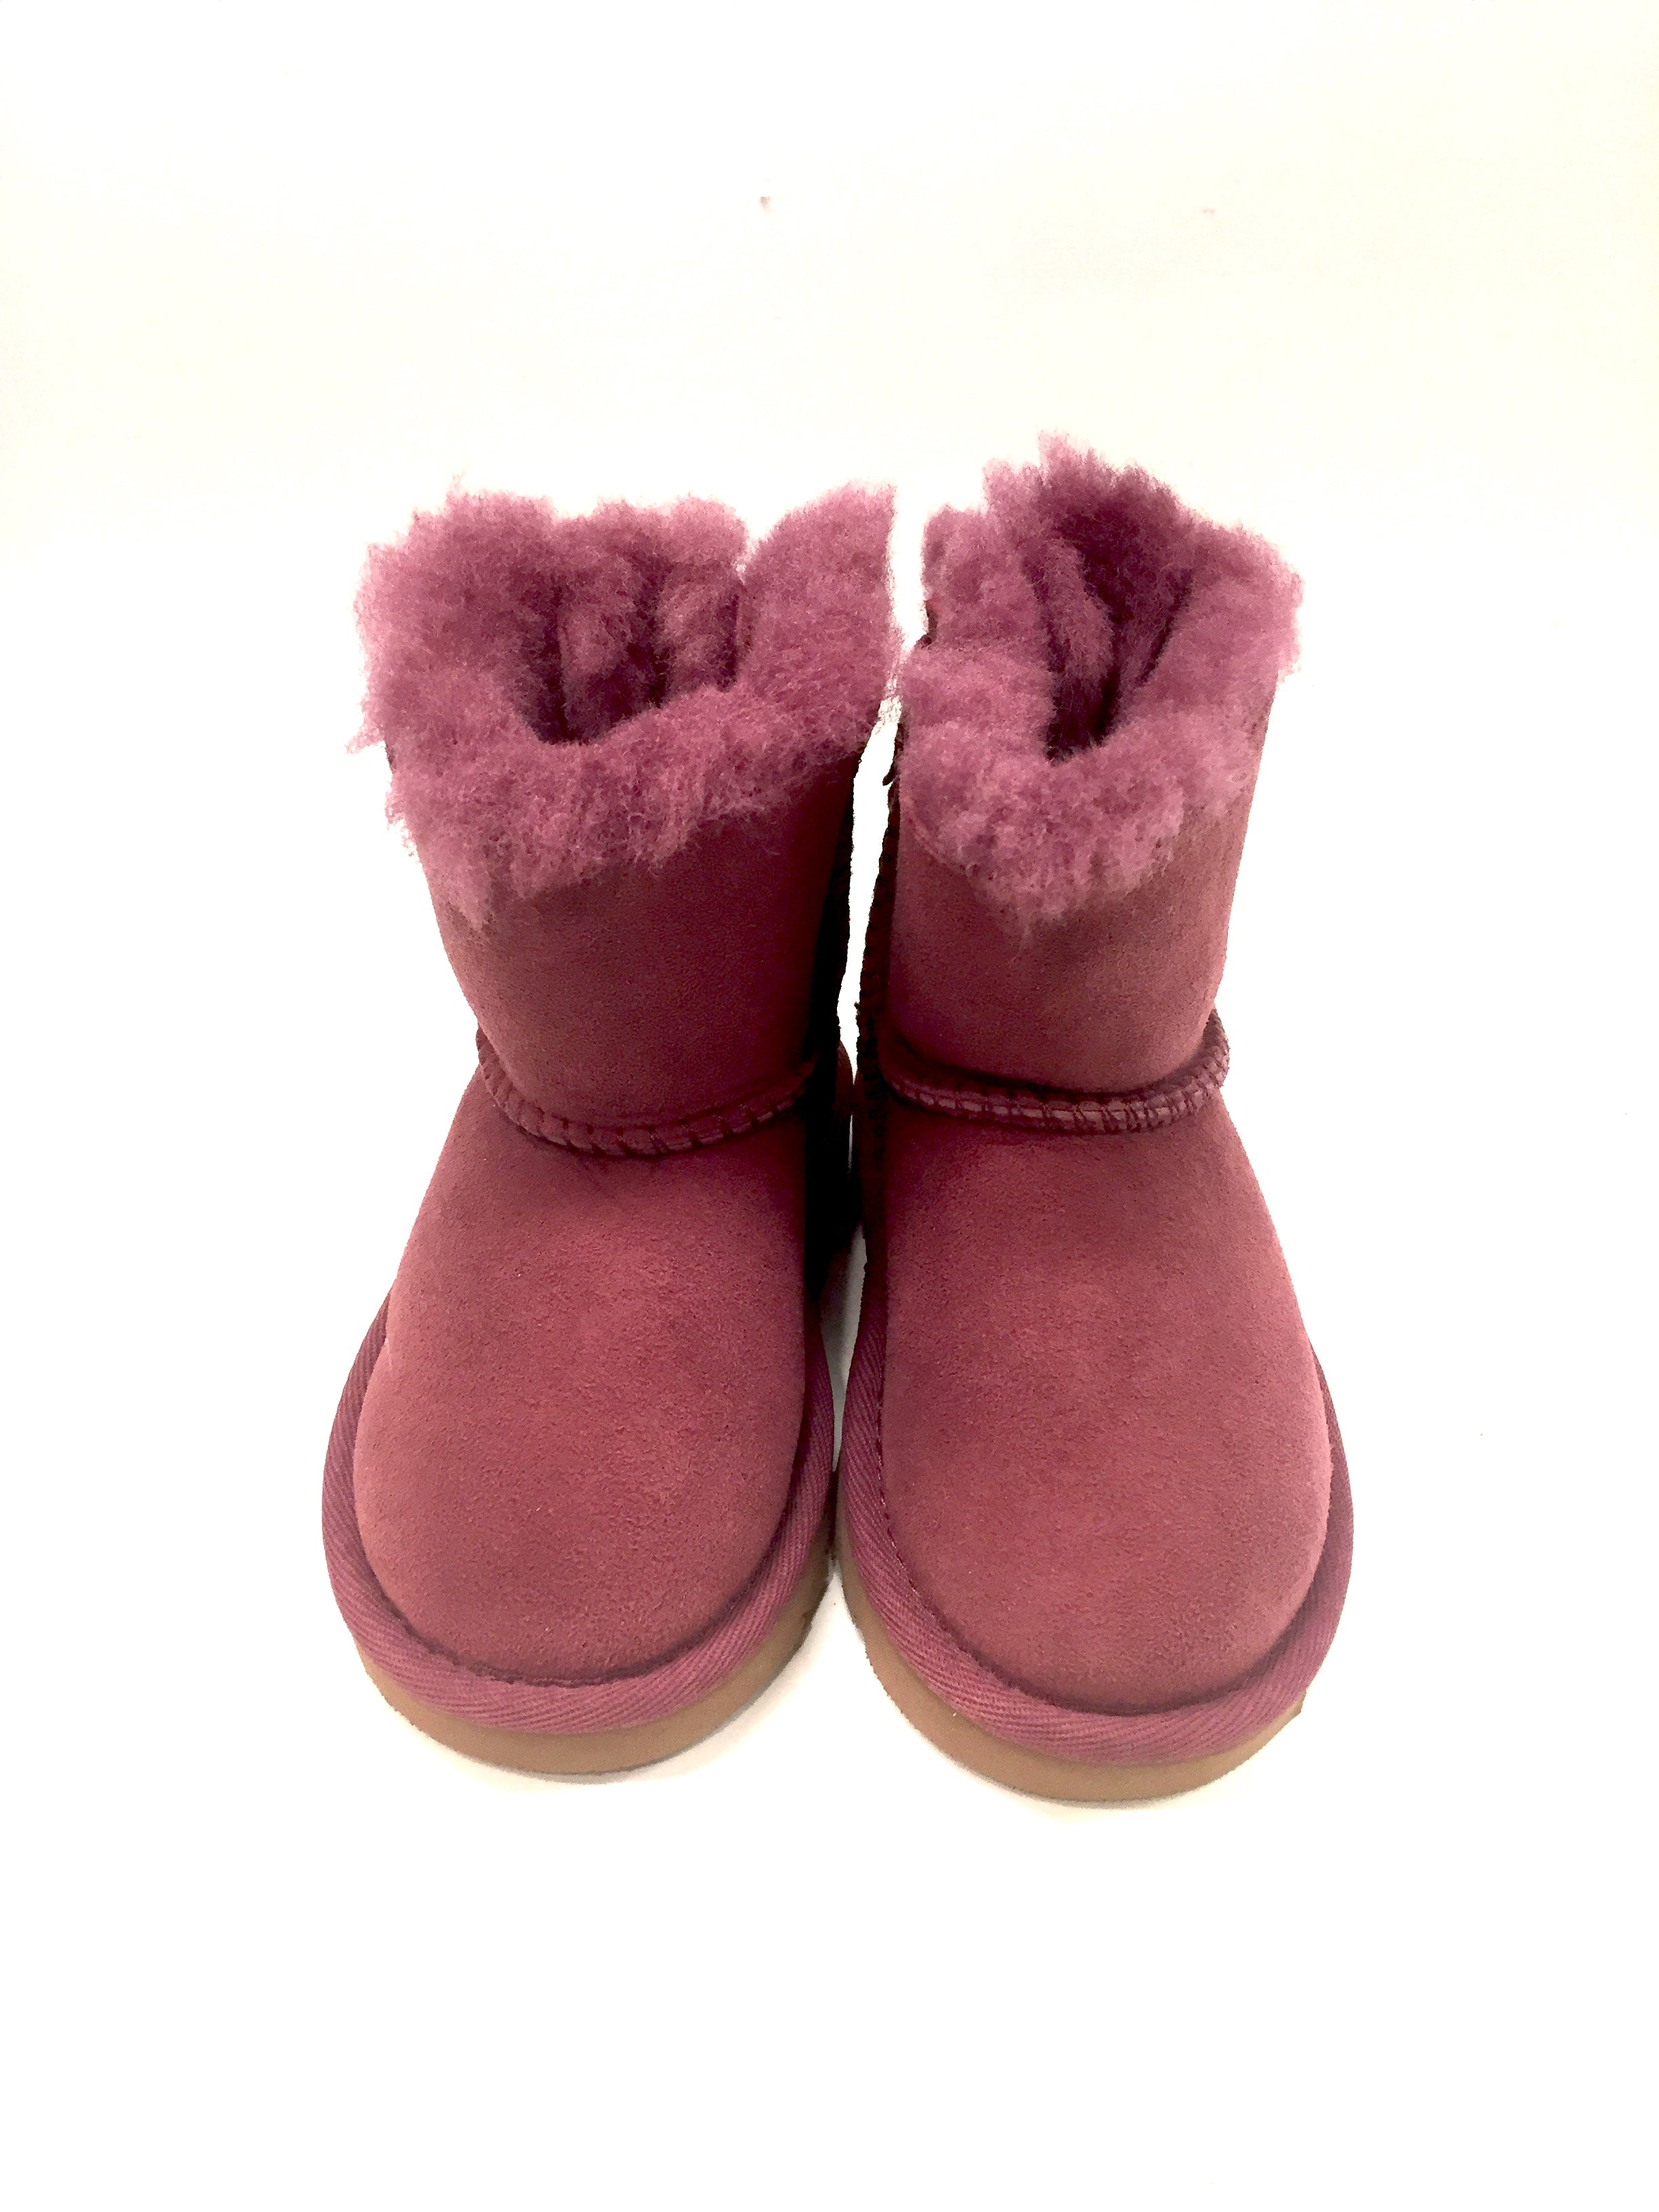 New UGG PURE Pink Suede Lamb Fur Lined